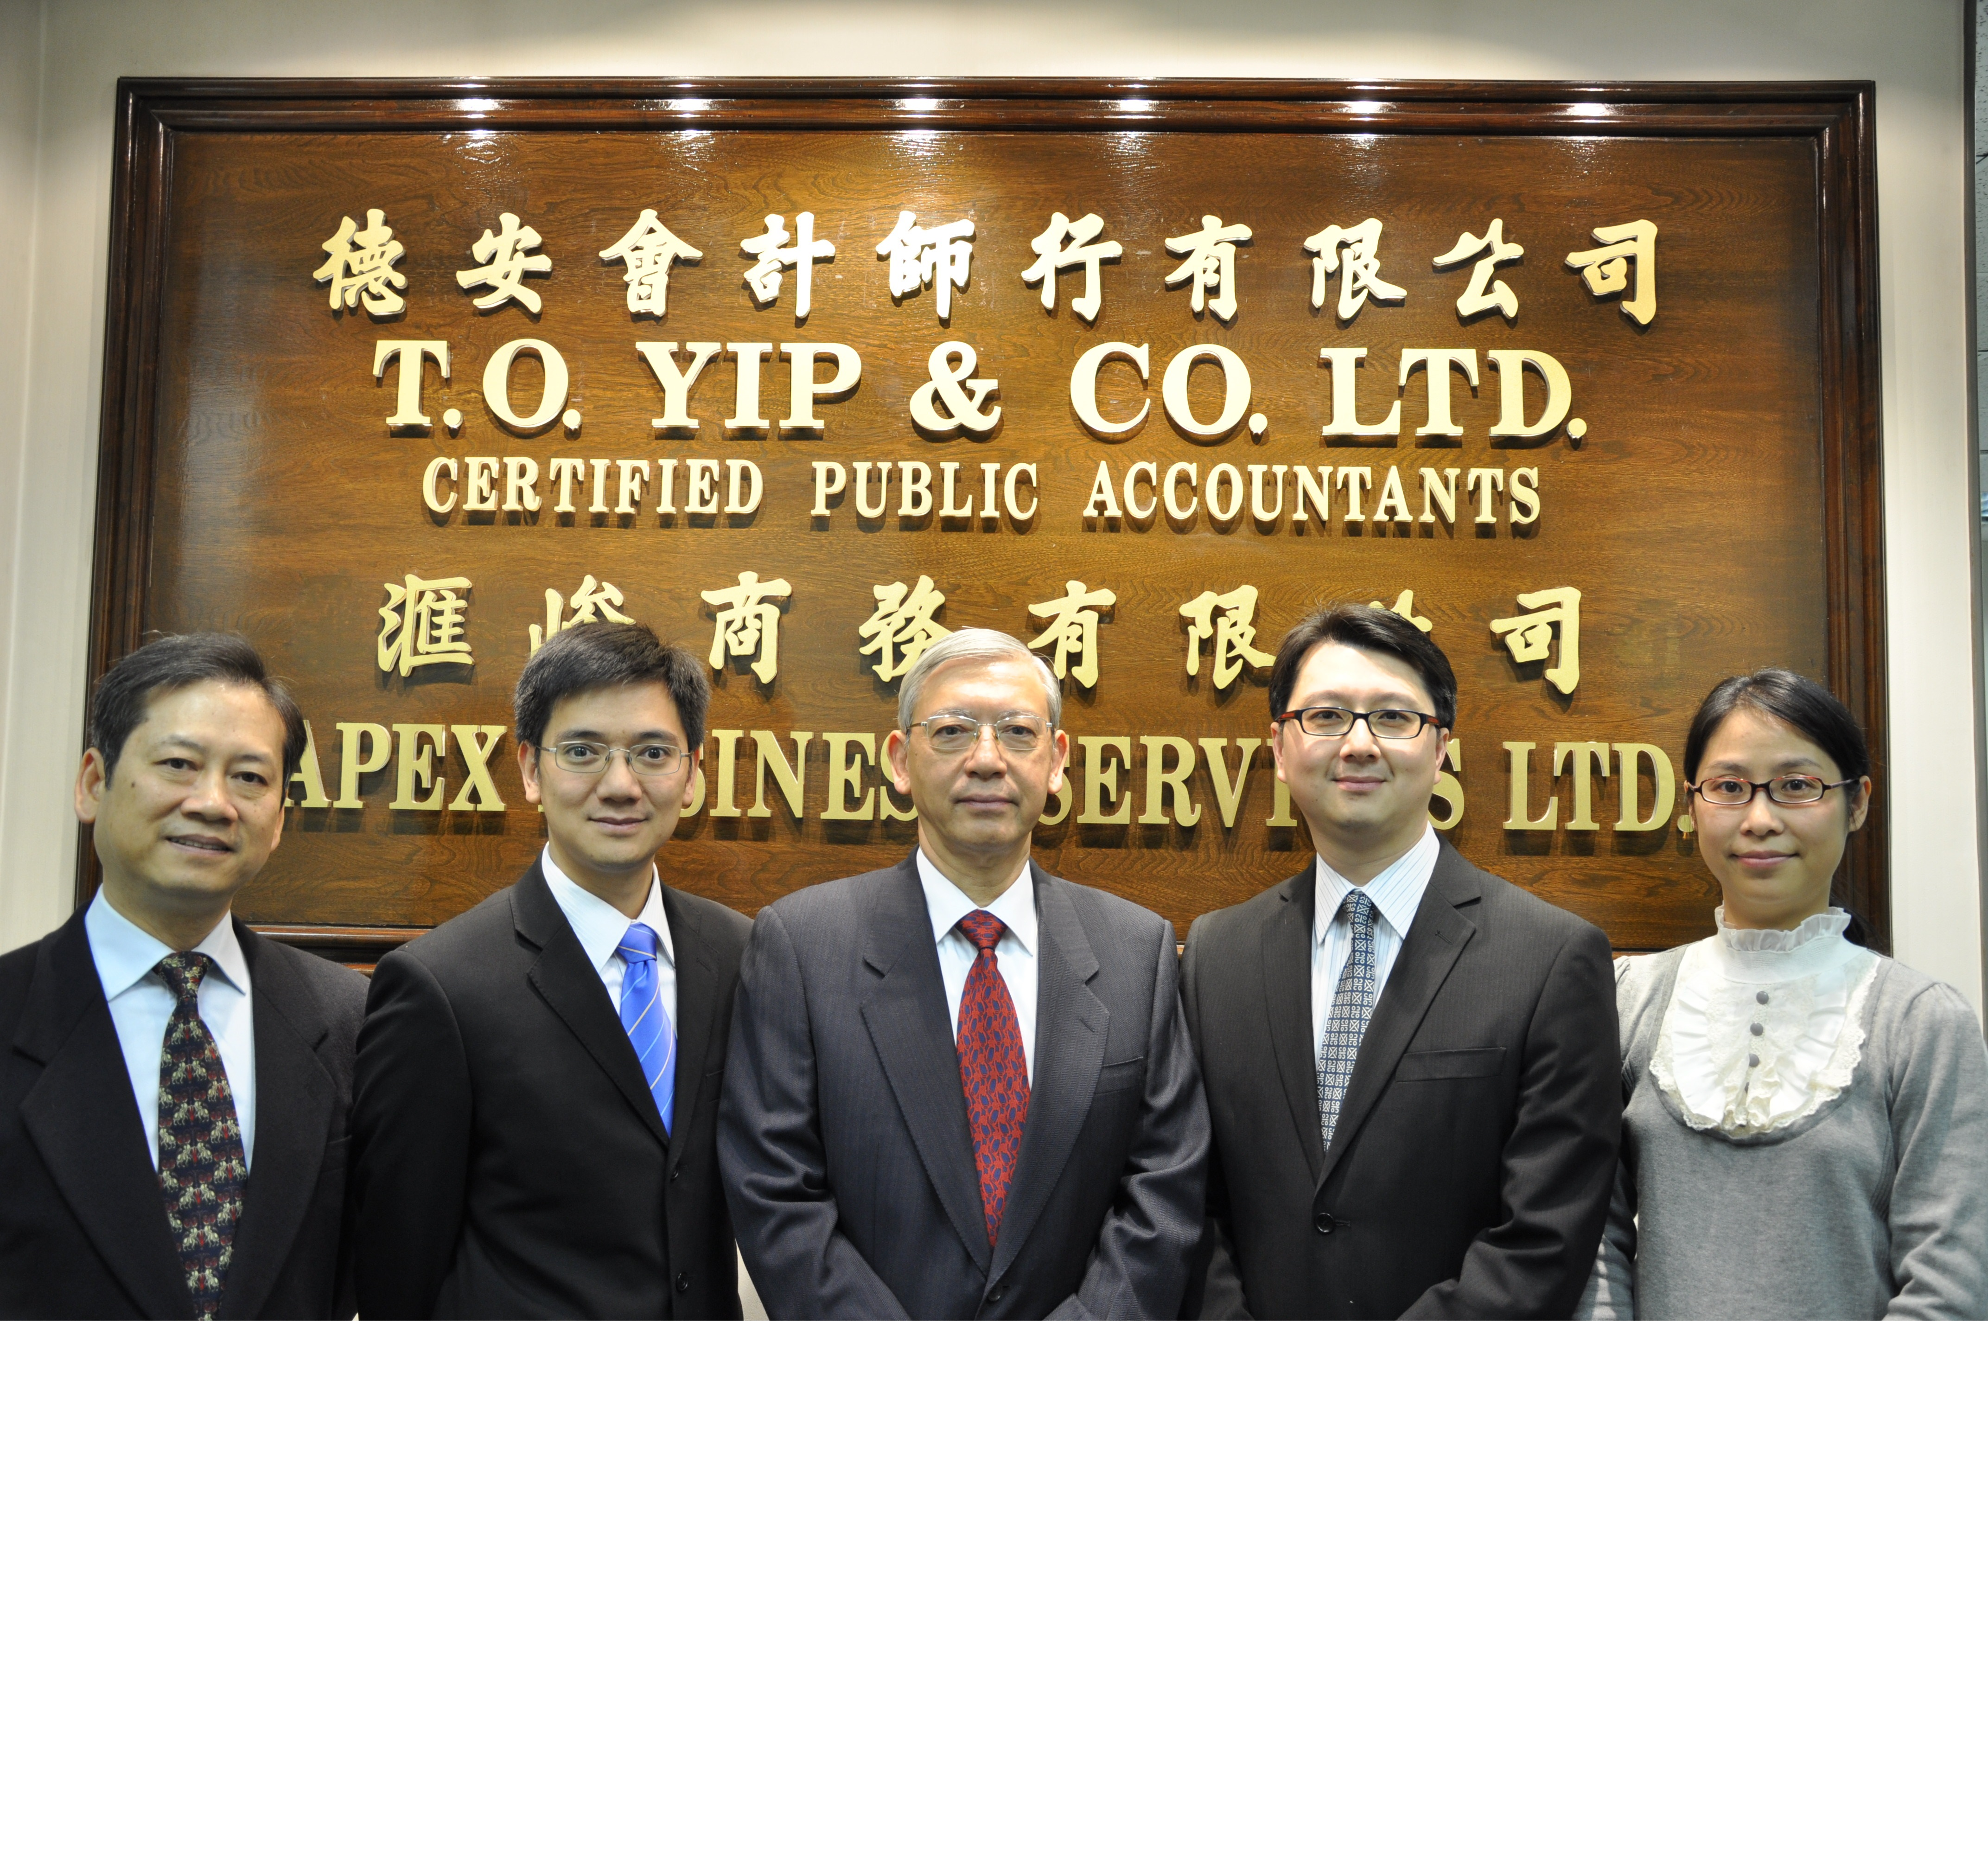 T O Yip & Co Limited